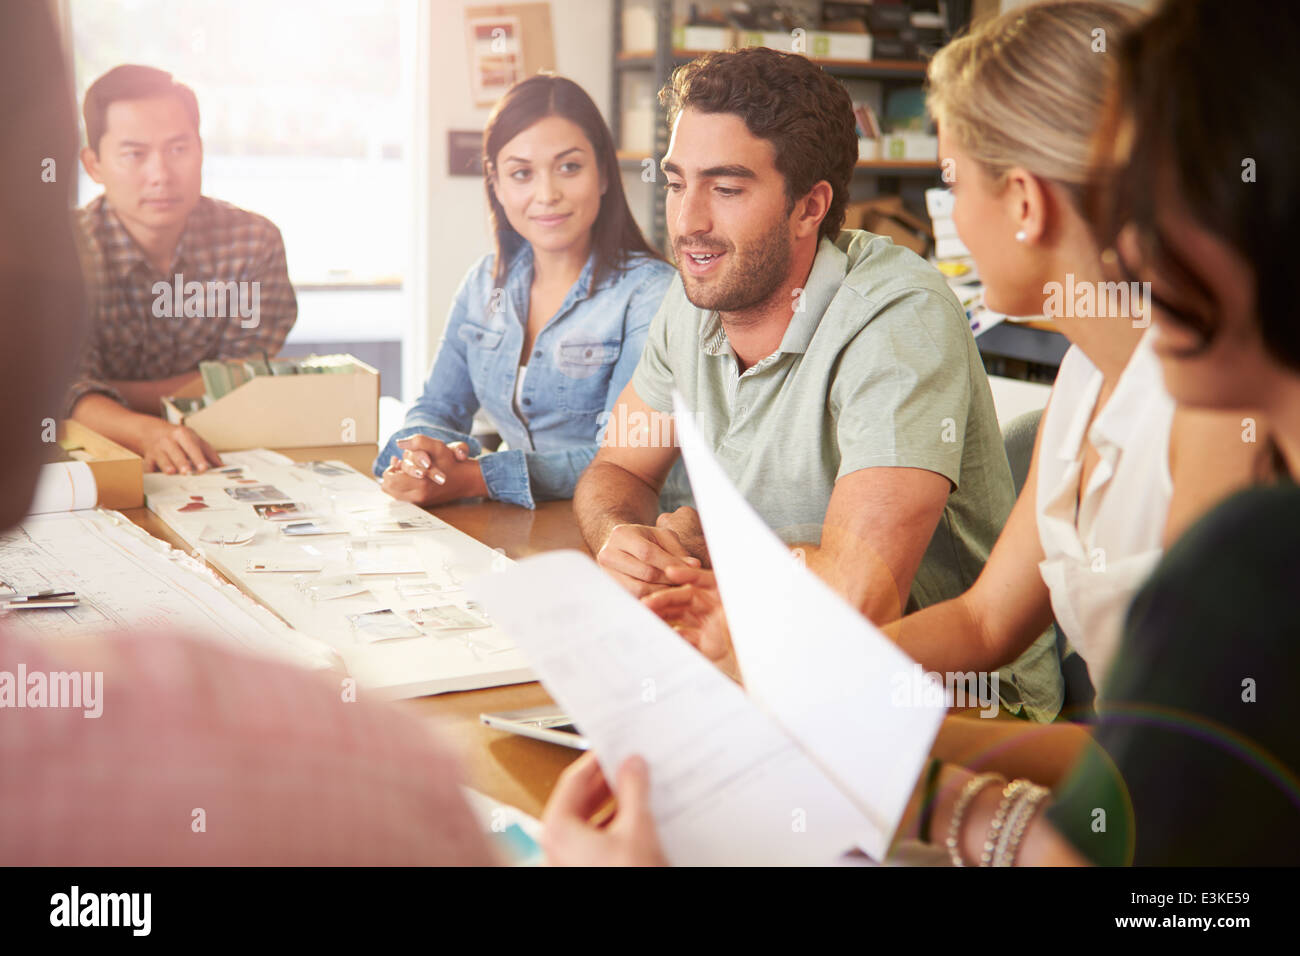 Six Architects Sitting Around Table Having Meeting - Stock Image